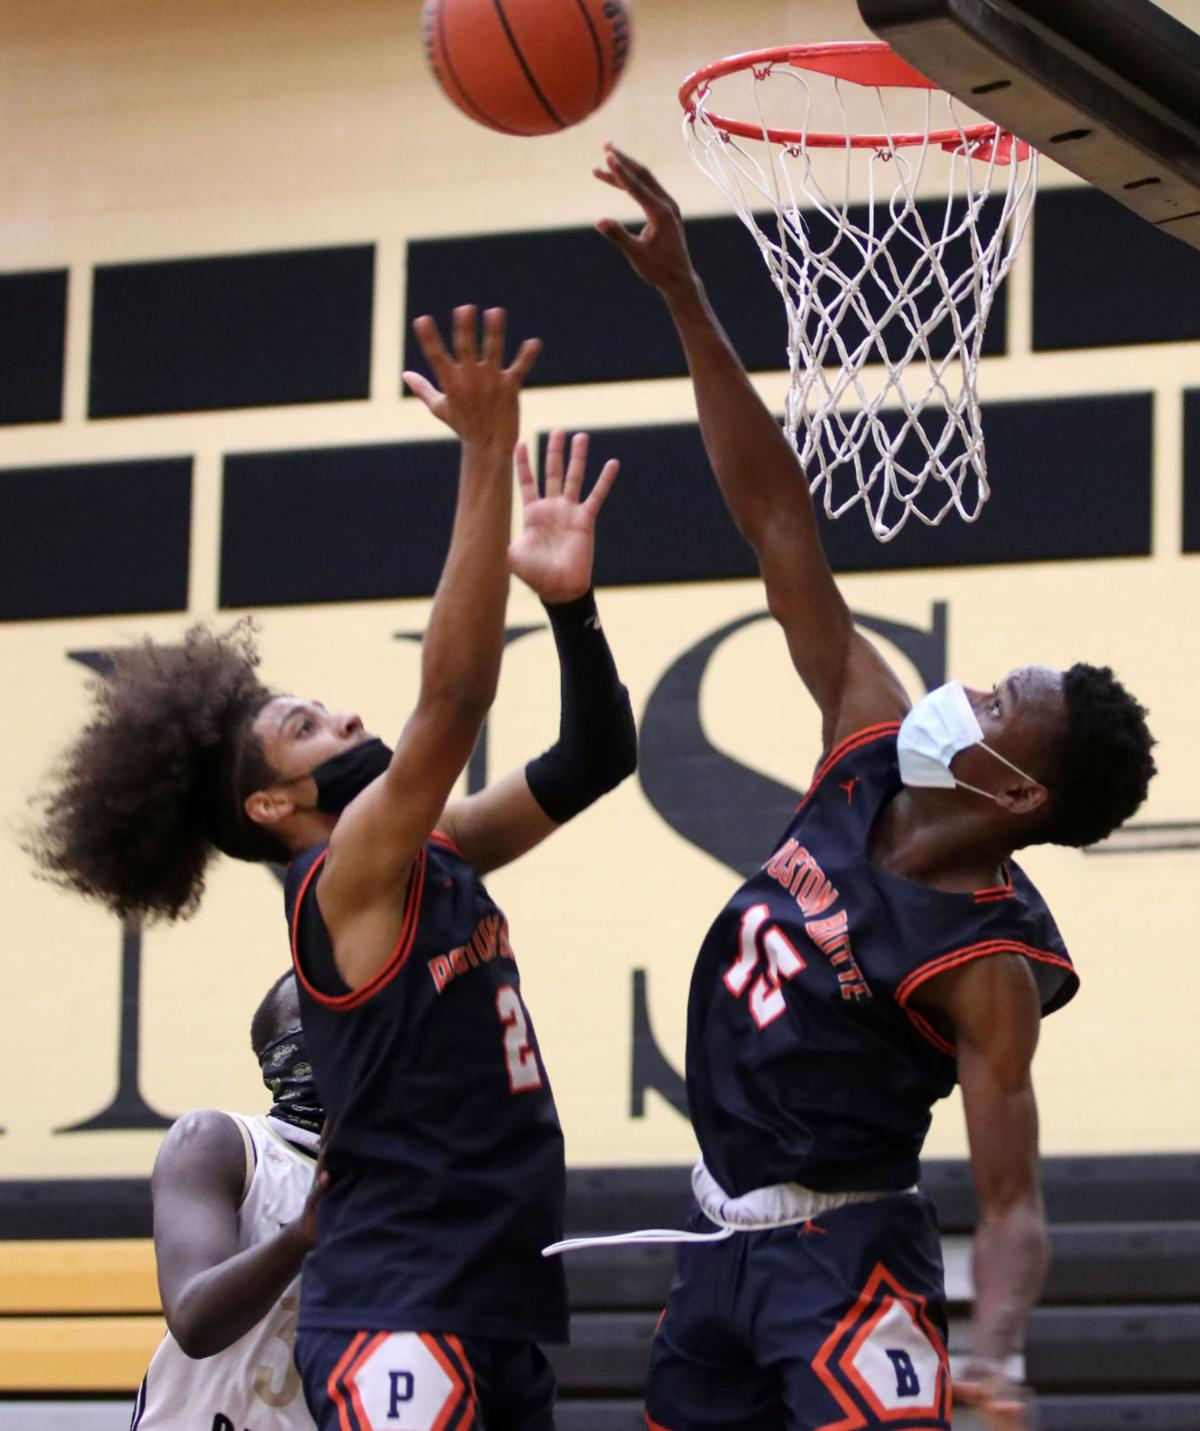 Boys Basketball: Poston Butte @ Vista Grande 1/22/21